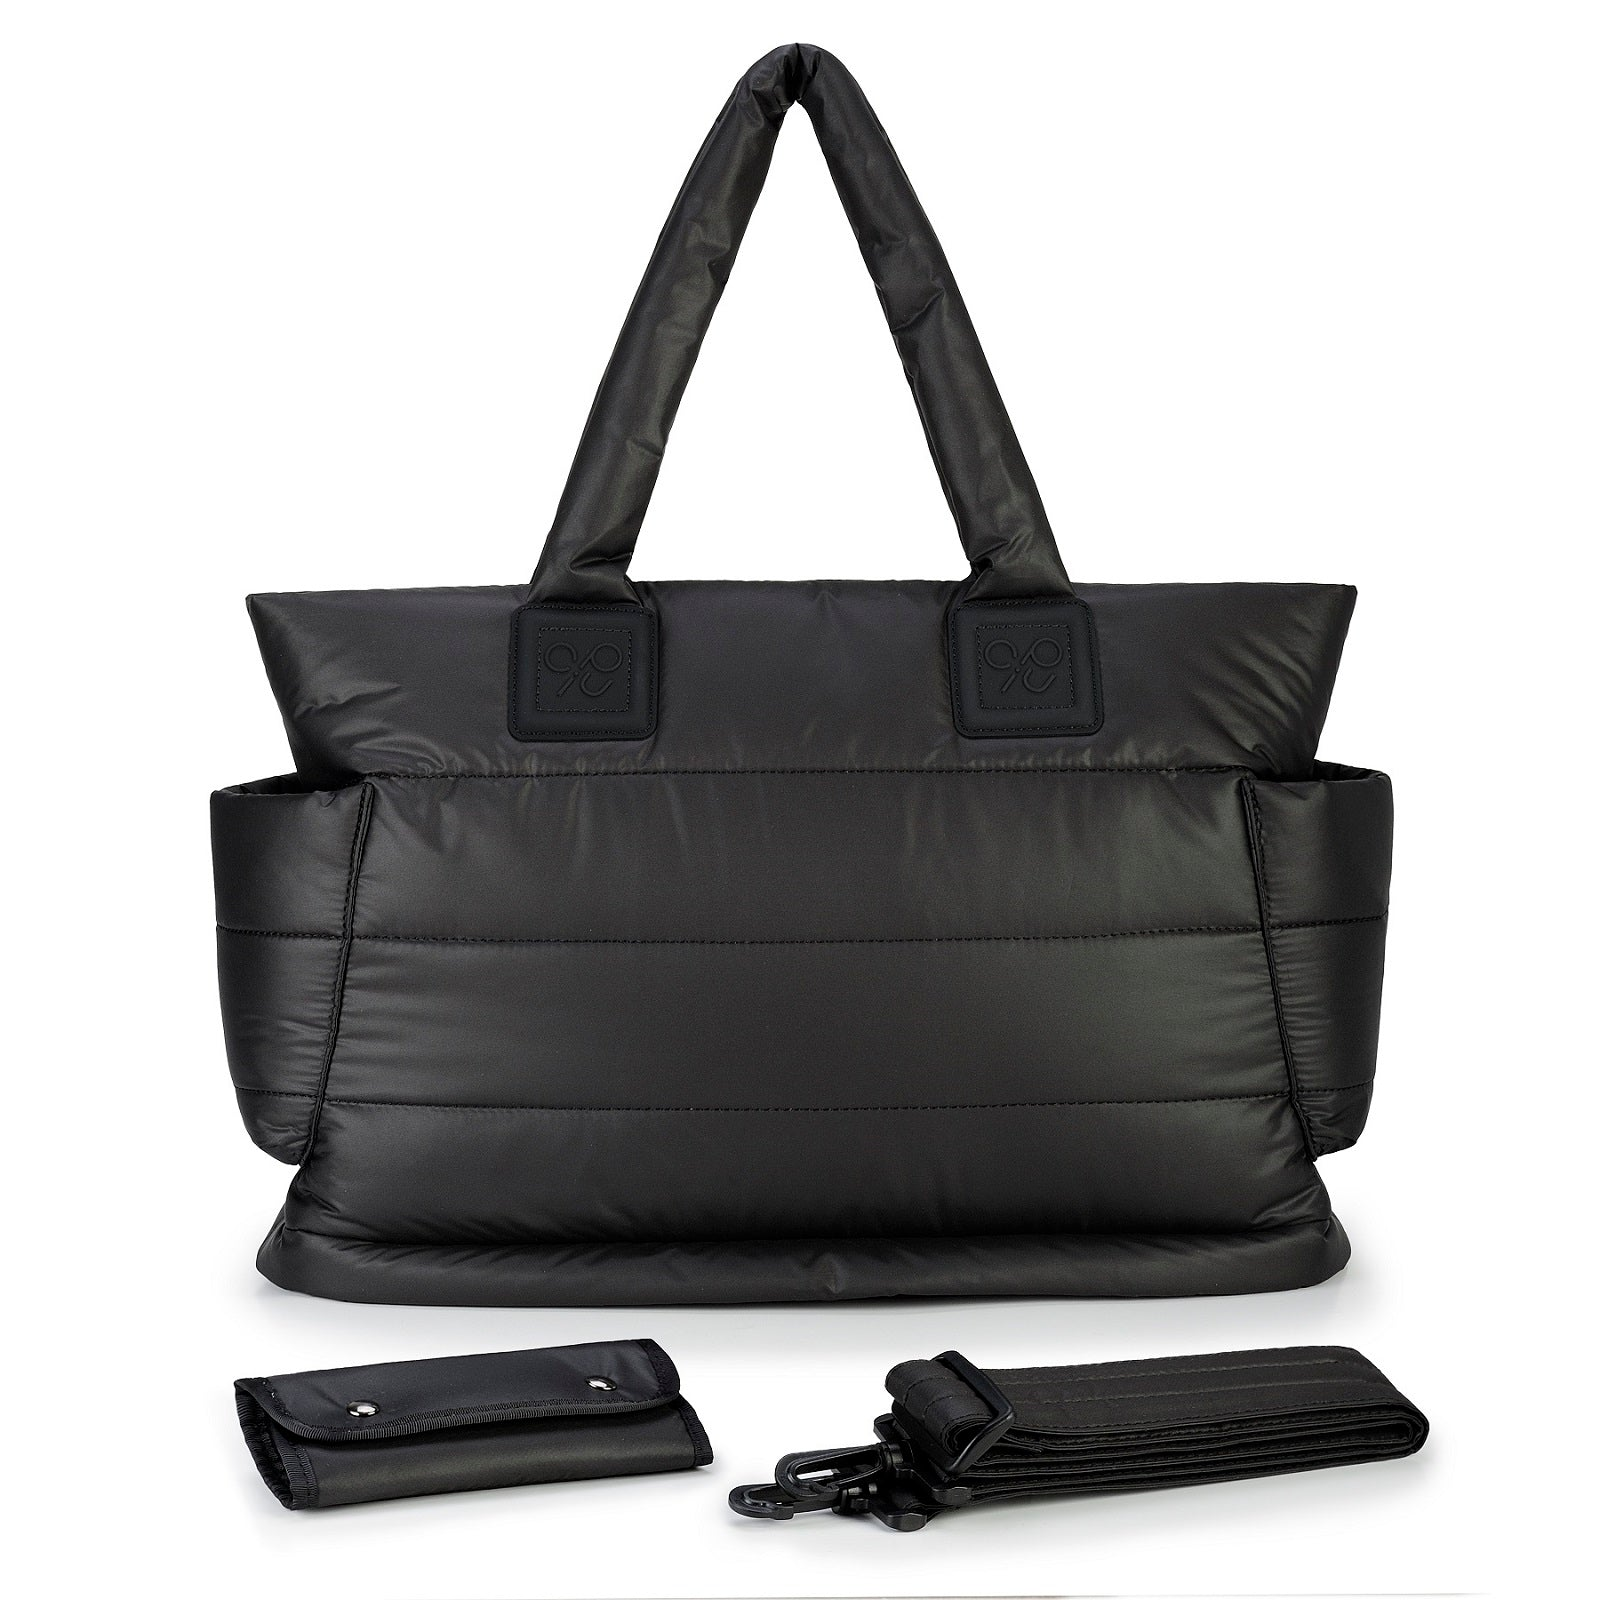 CiPU - Airy Tote L - So Black